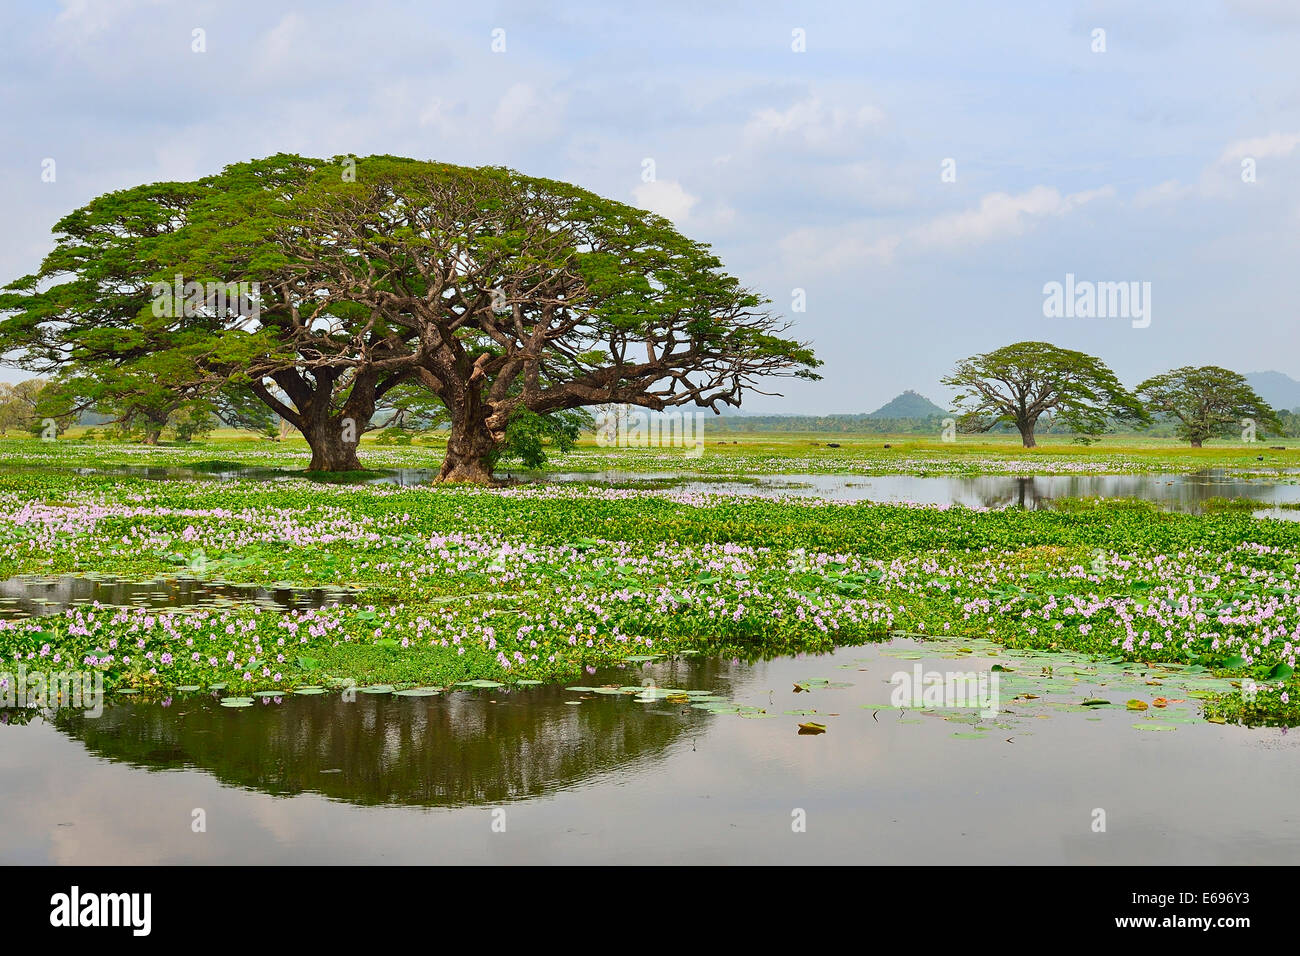 Trees on the artificial lake Tissa Wewa, Tissamaharama, Southern Province, Sri Lanka - Stock Image